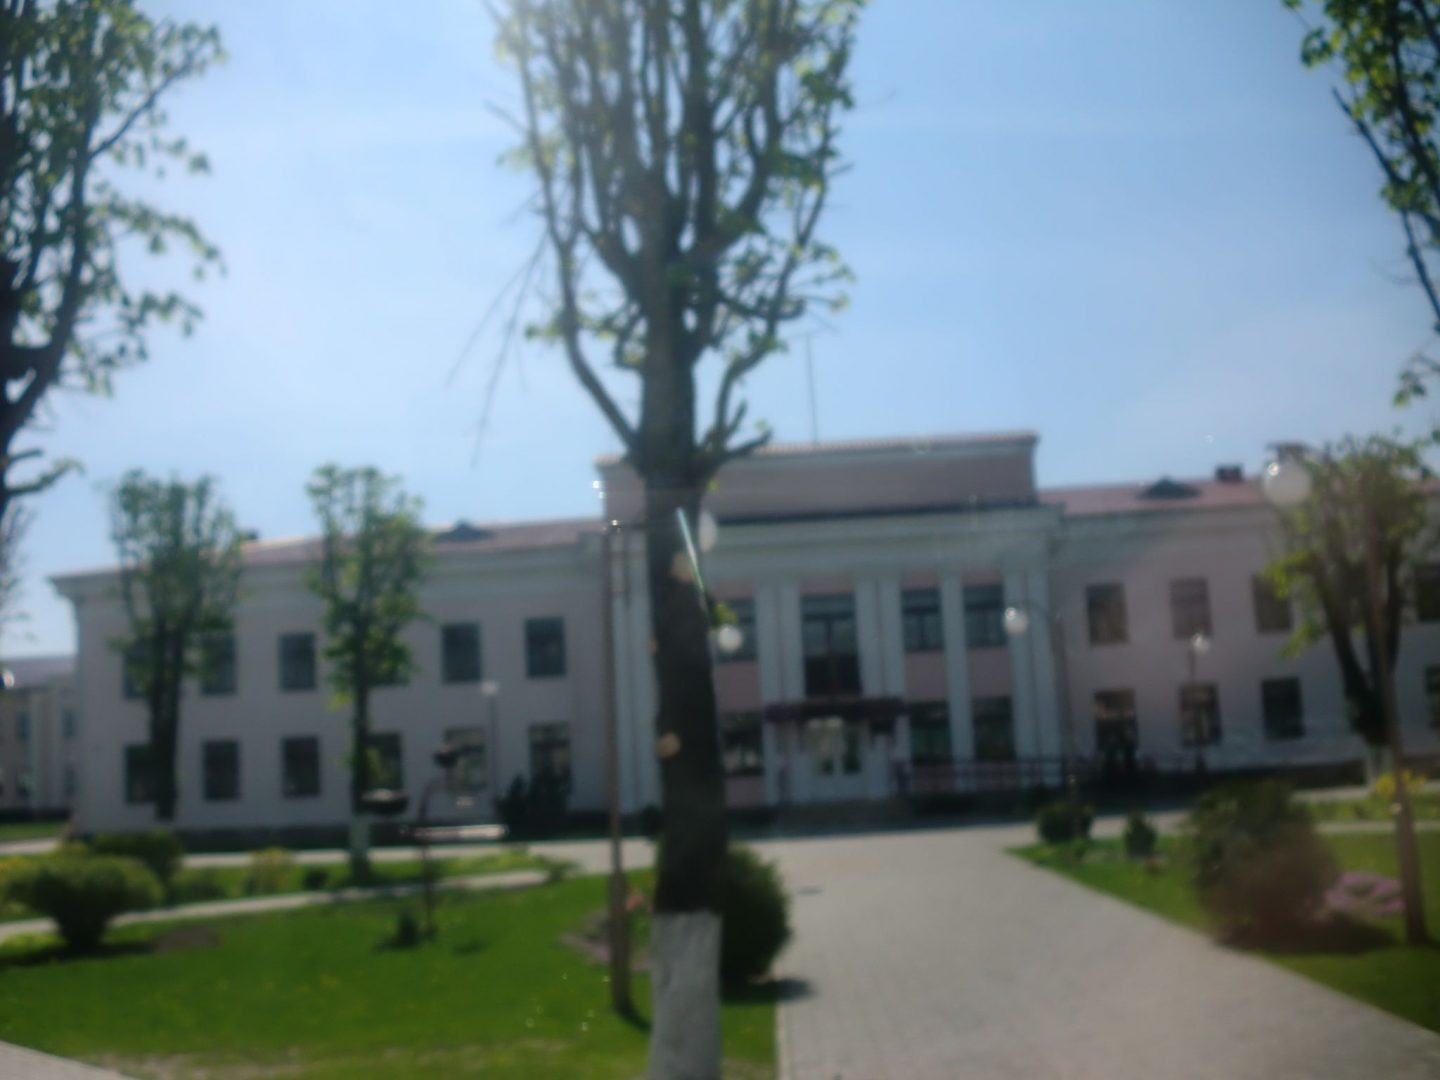 From Vilnius to Minsk by bus- A house with trees in the background - House